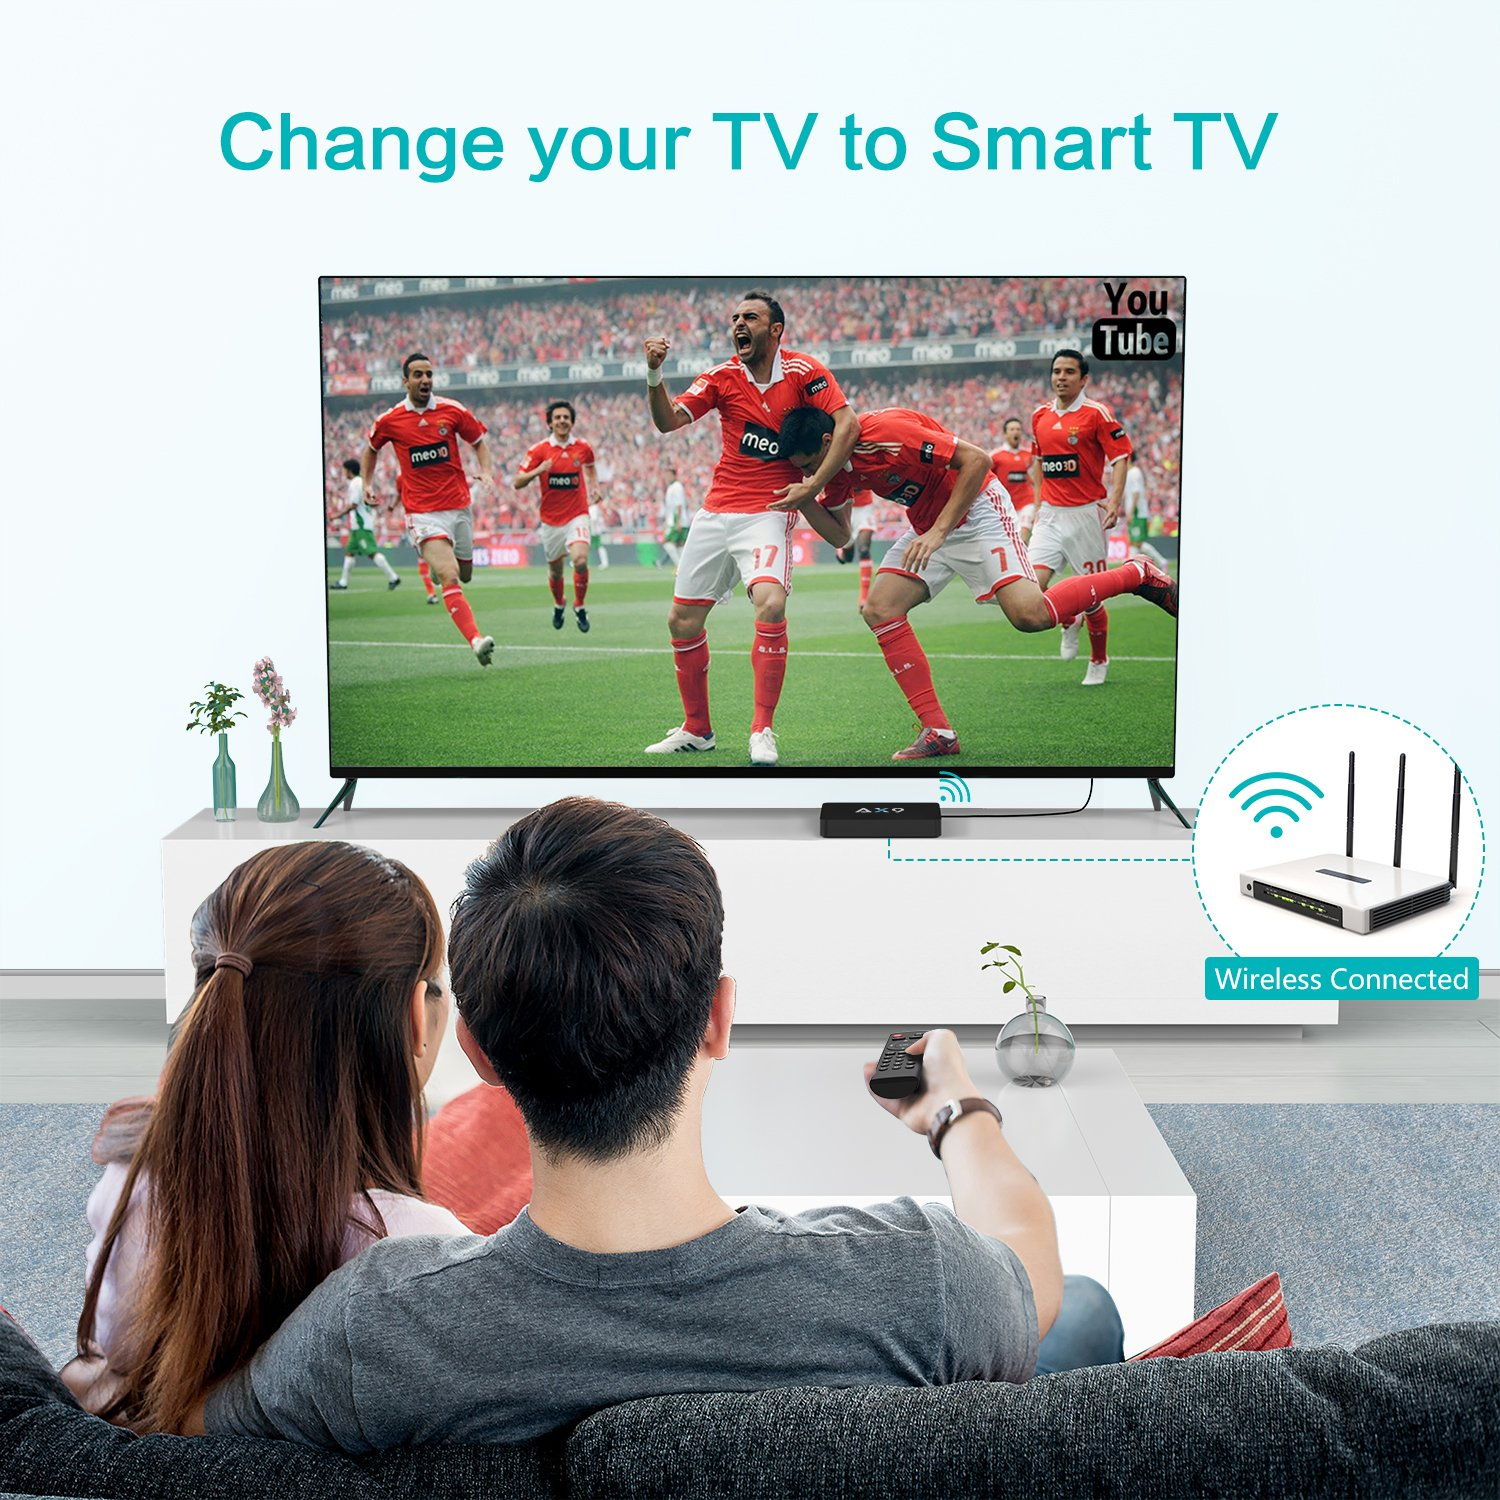 TICTID [1G DDR3/8G EMMC] AX9 Android 7.1 TV Box Amlogic Quad Core A53 Processor 64 Bits Smart TV Box with H.265 HEVC Video Decoder UHD 4k.2k HDMI 2.0 Output 2.4G WiFi Android Box by TICTID (Image #6)